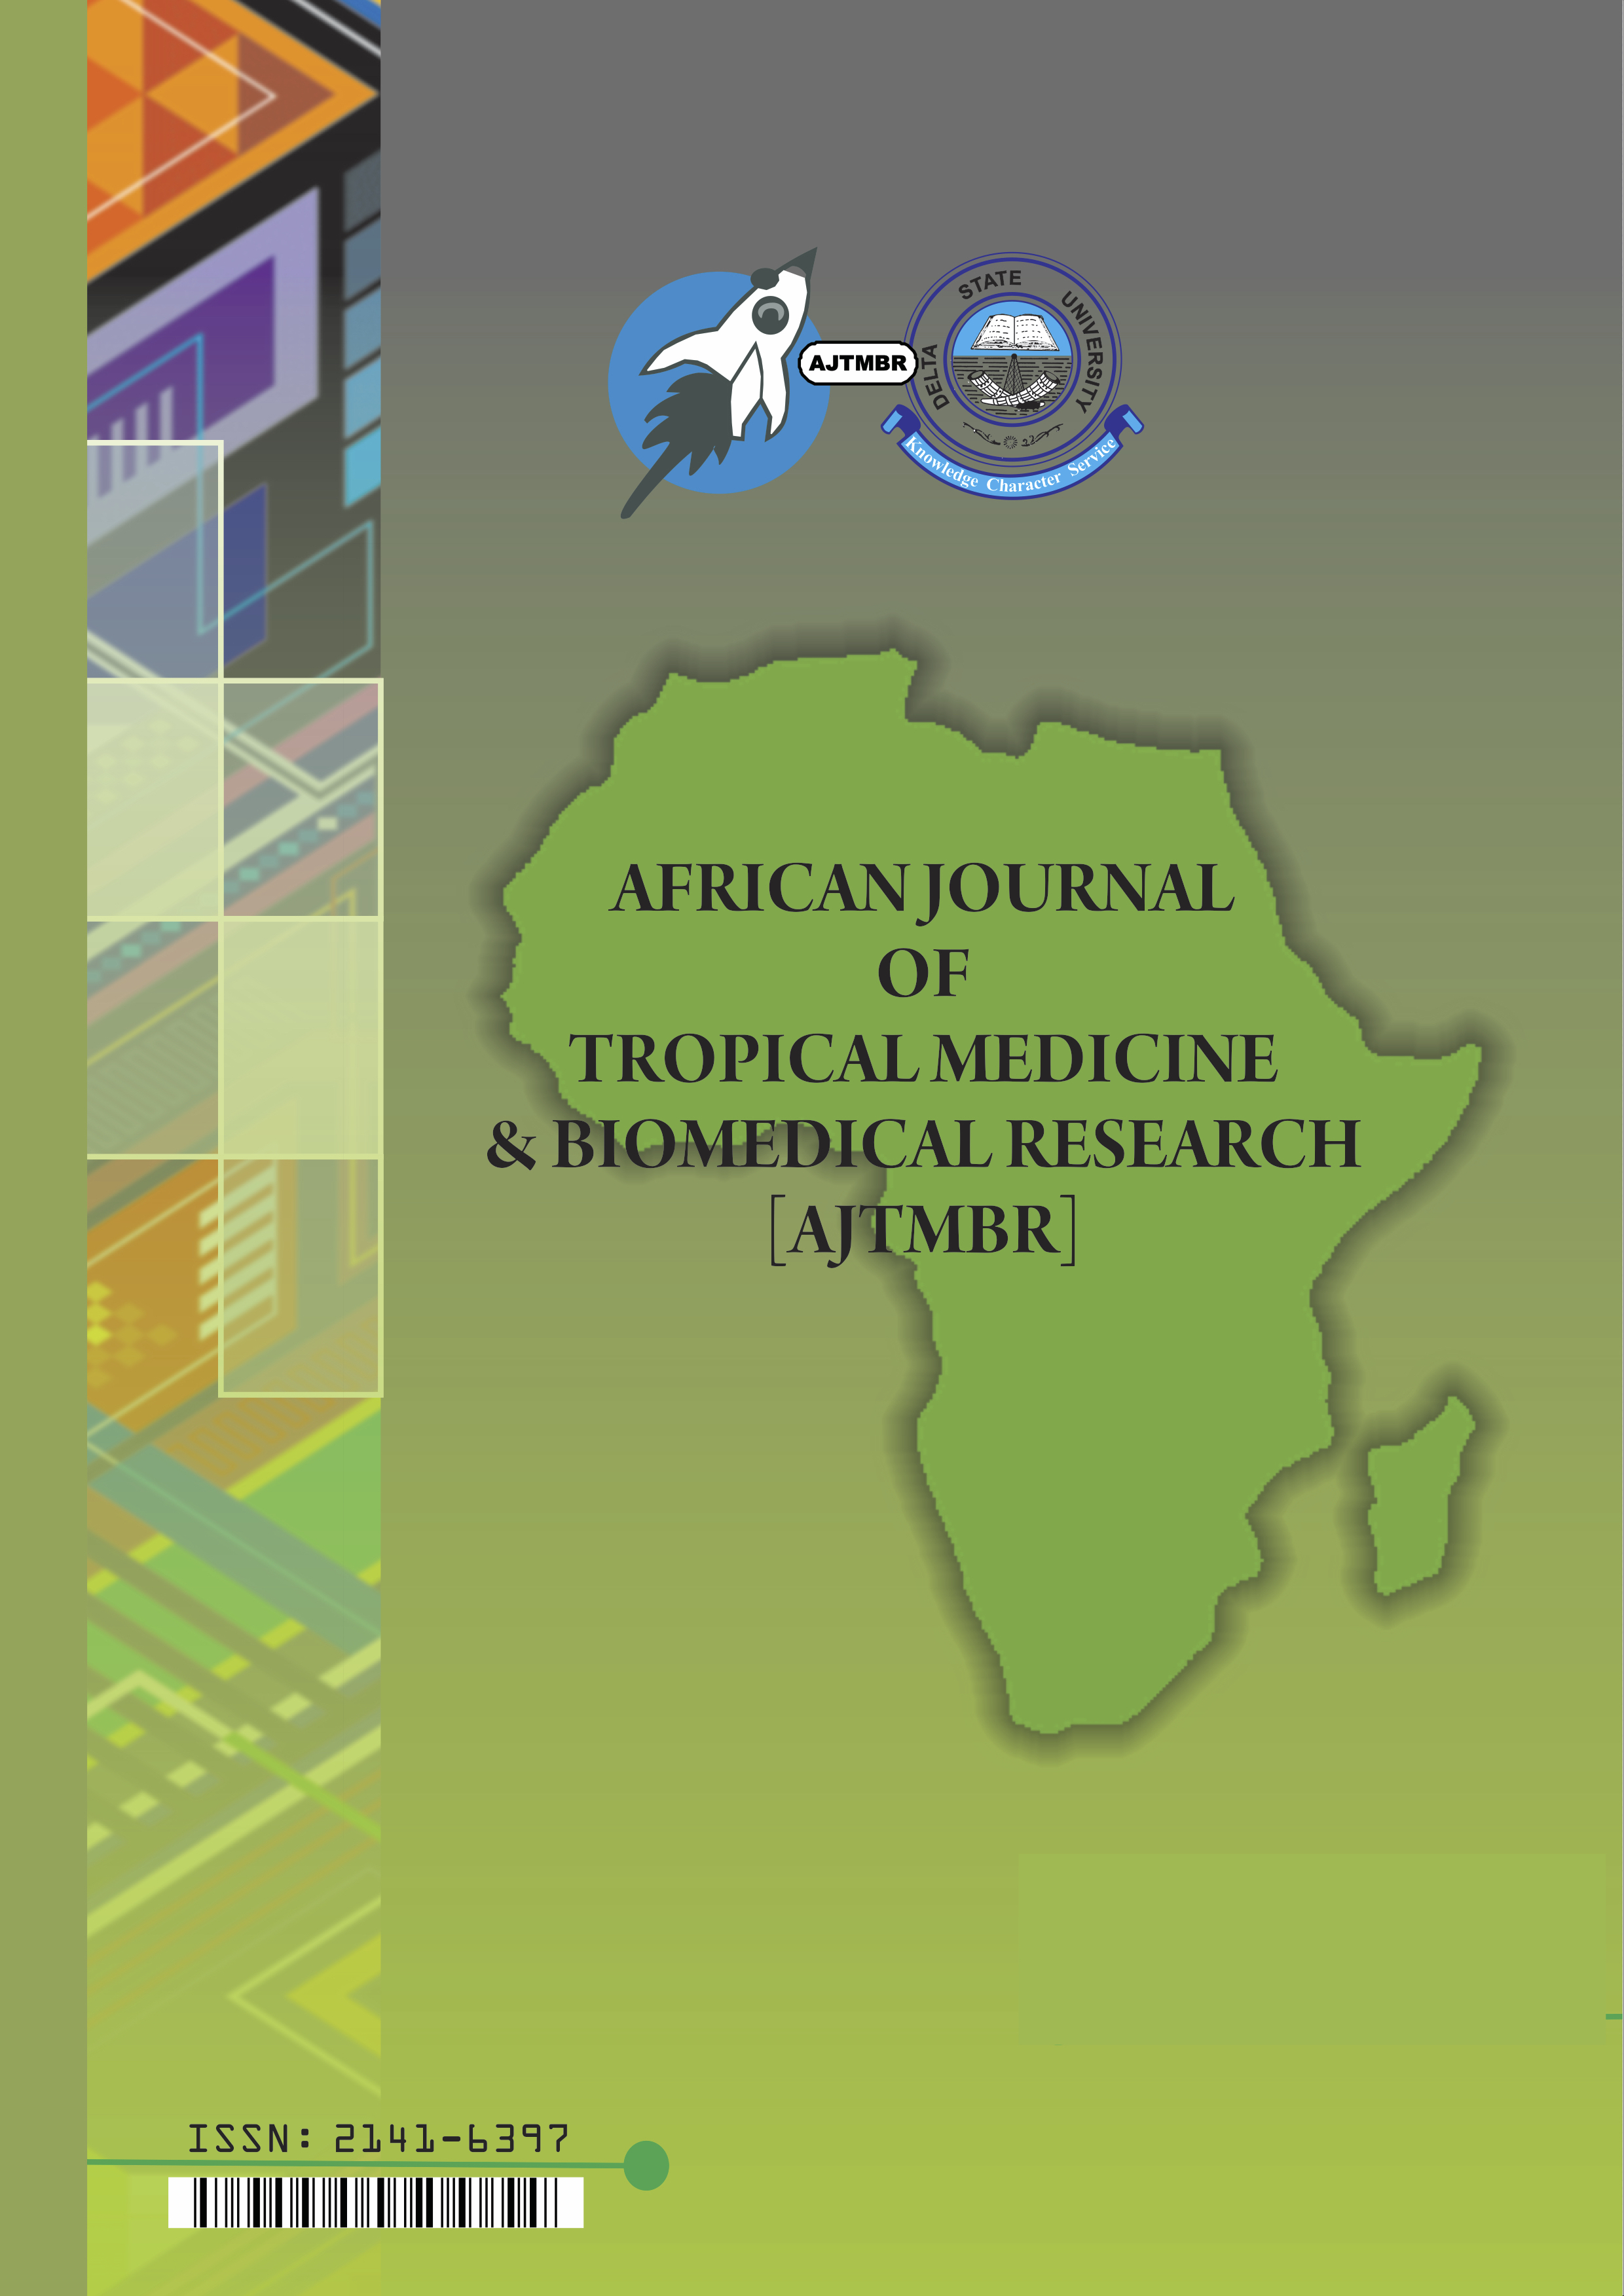 View Vol. 3 No. 2: African Journal of Tropical Medicine and Biomedical Research; March 2017